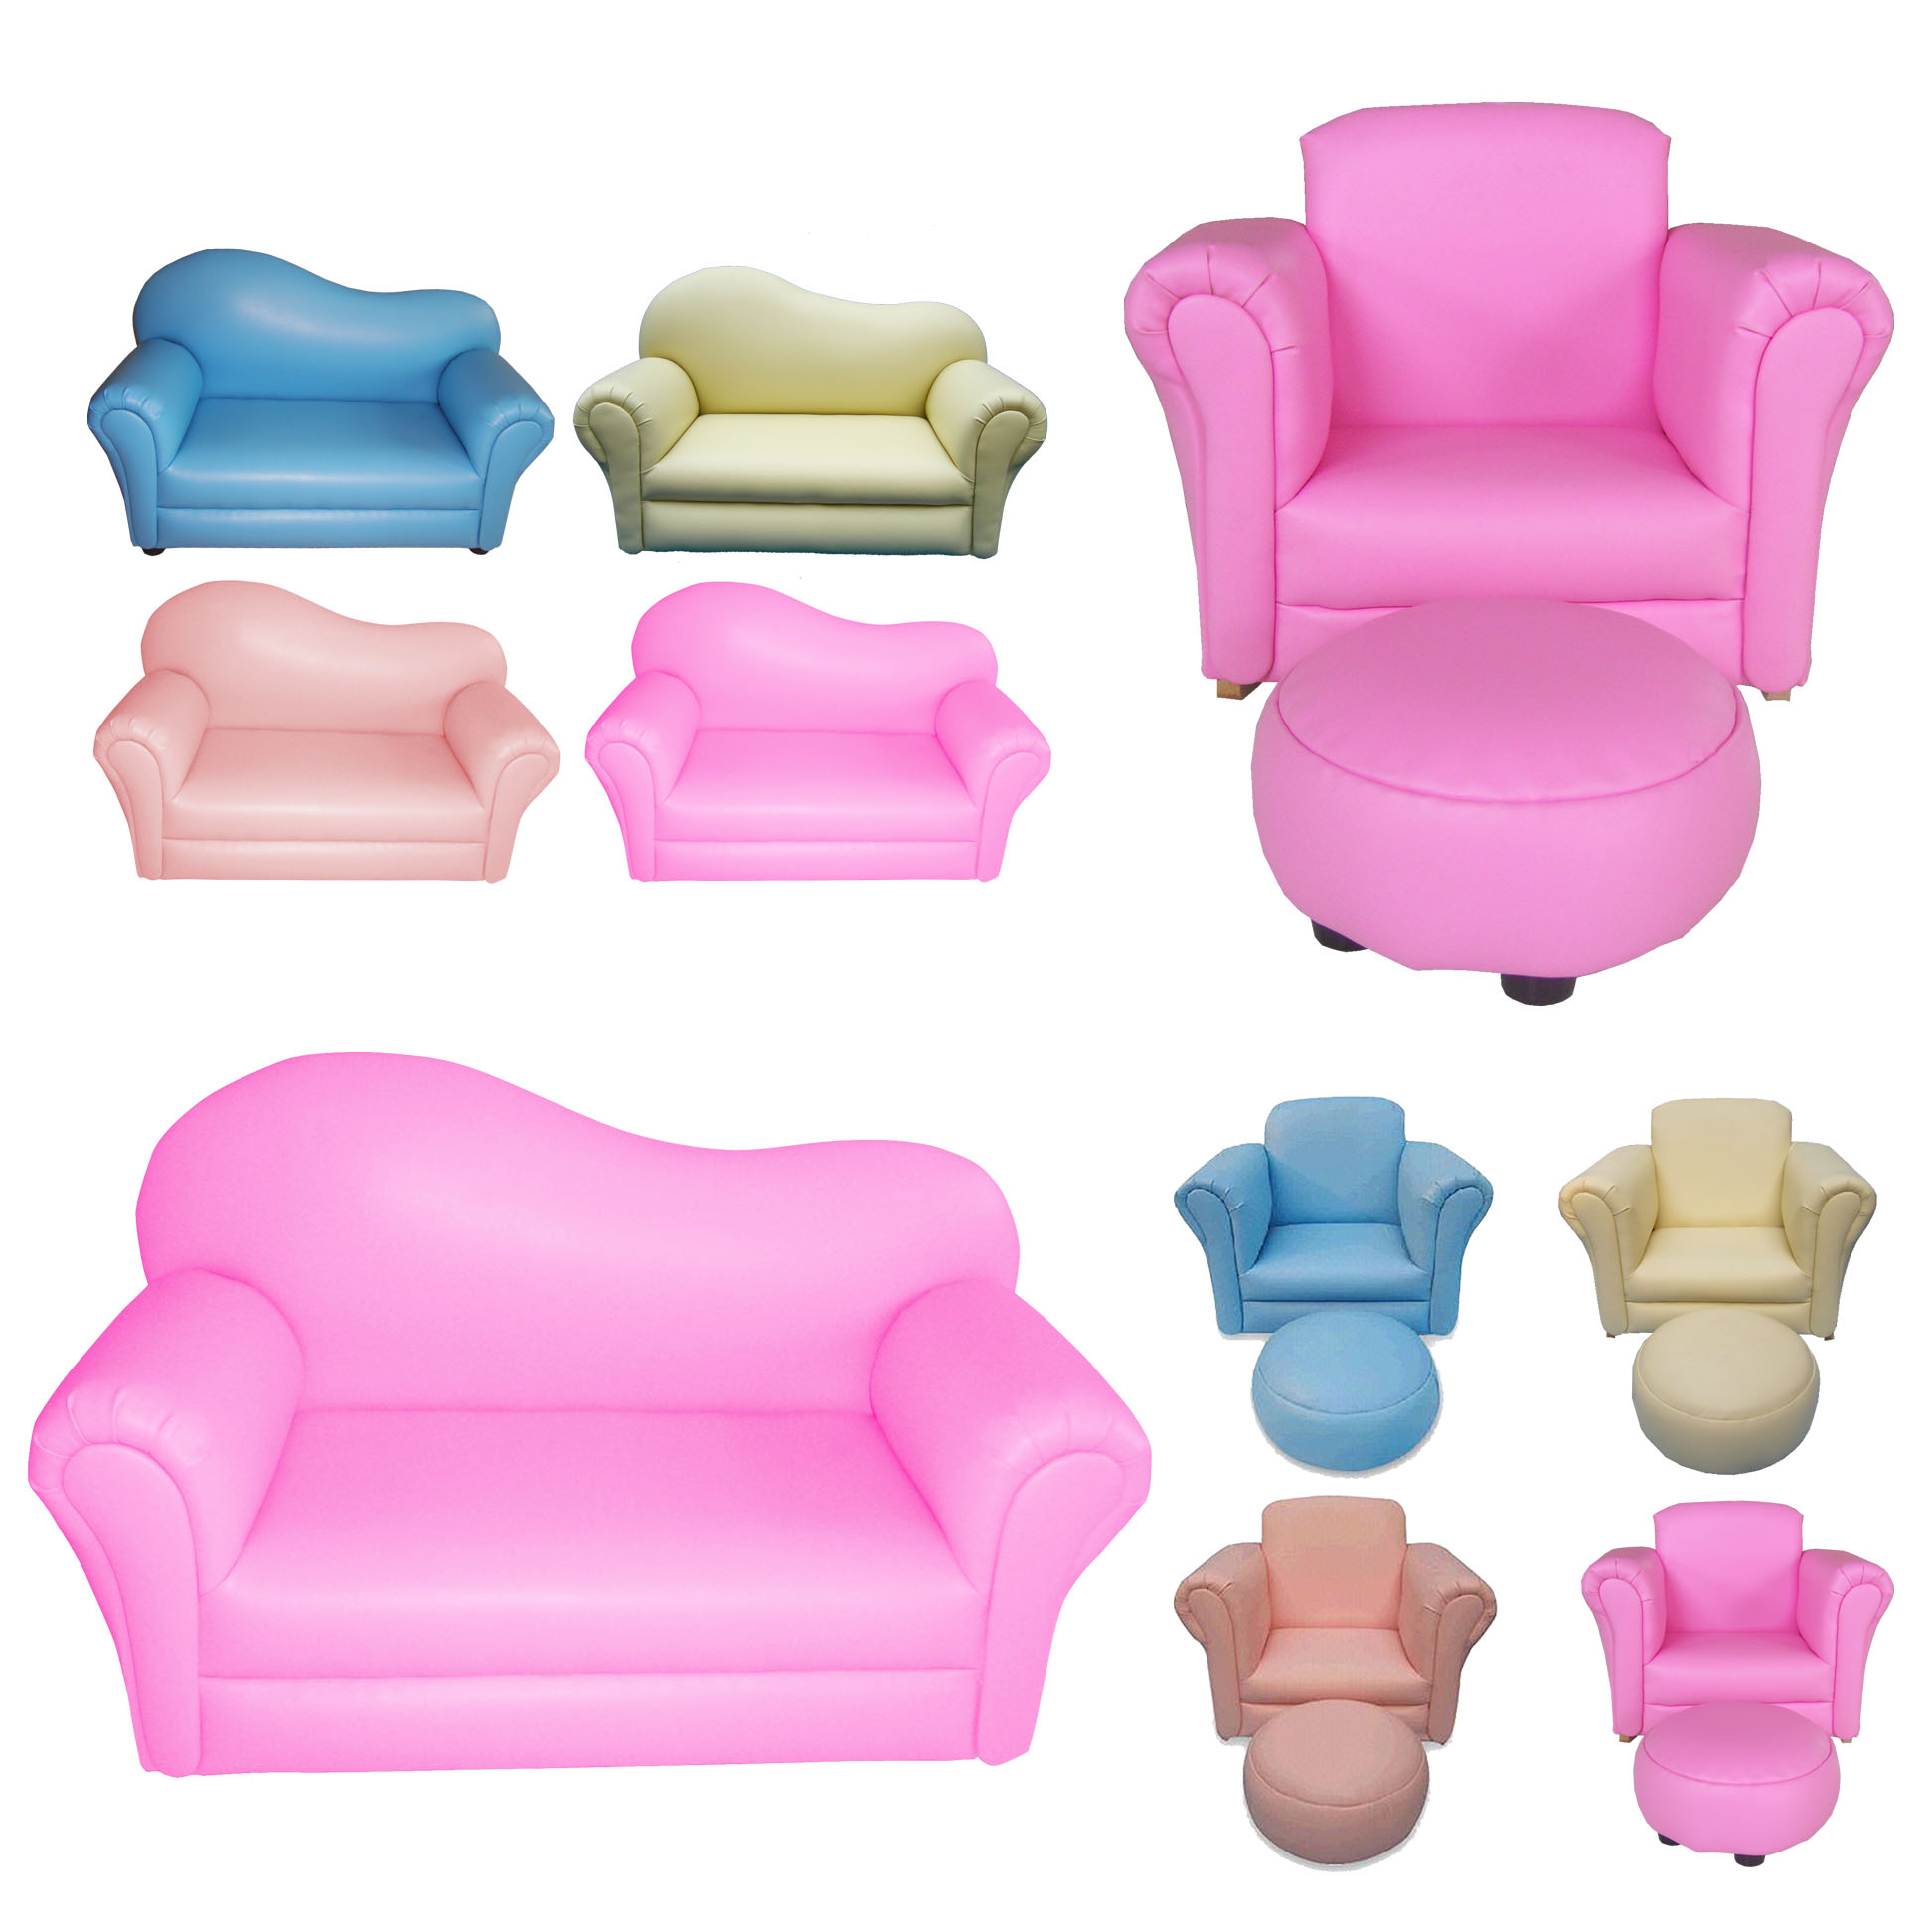 chair stool sofa target purple children kids child furniture armchair couch seat on